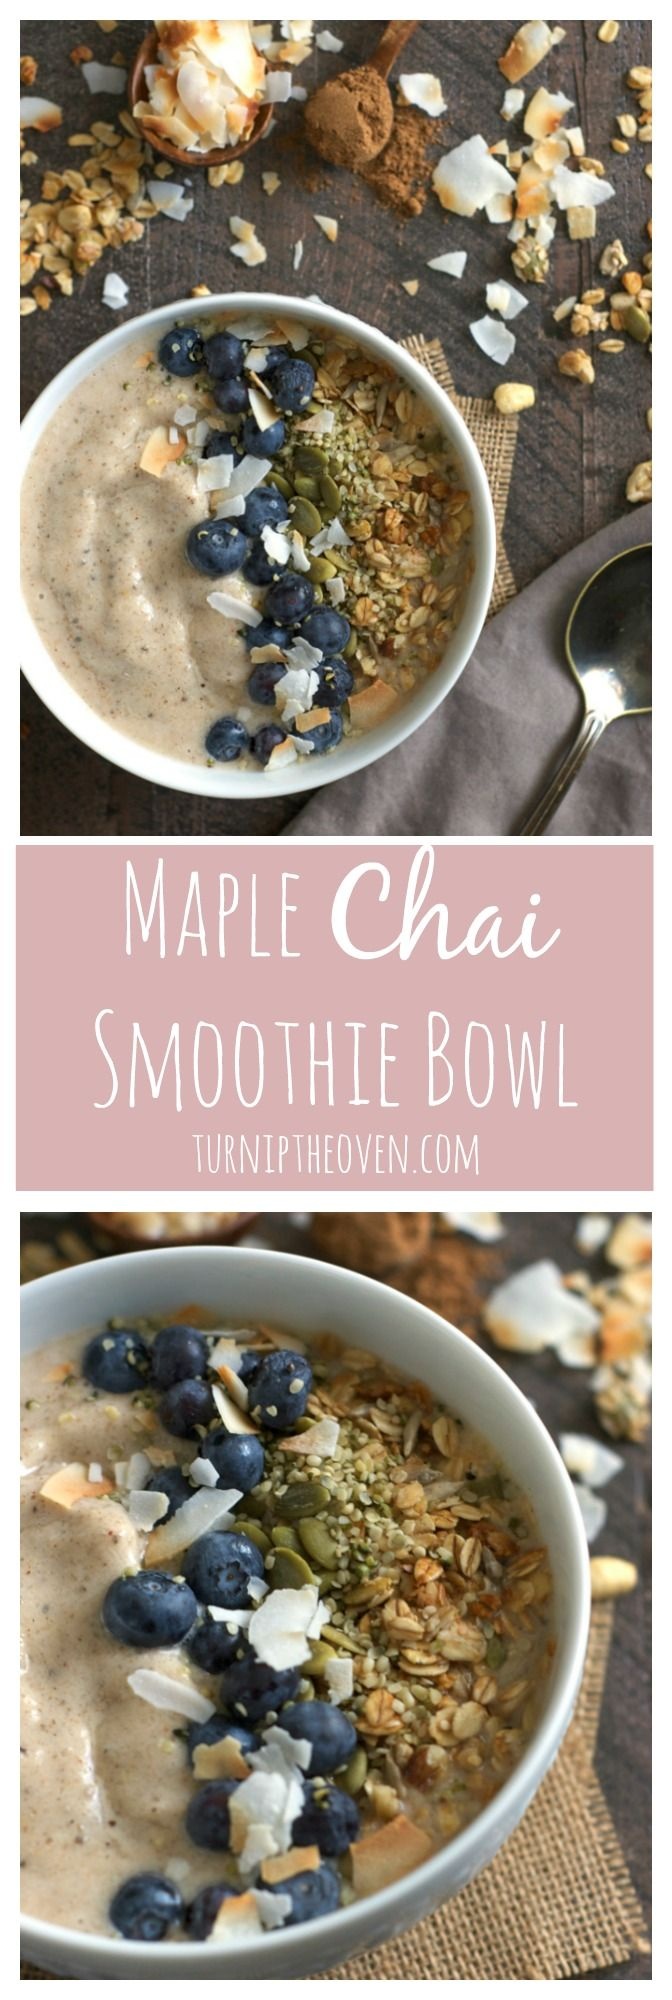 Sweet, smoky maple syrup and spicy chai are a perfect match in this easy, gluten-free, vegan smoothie bowl. Get the recipe and don't forget to load on the toppings!